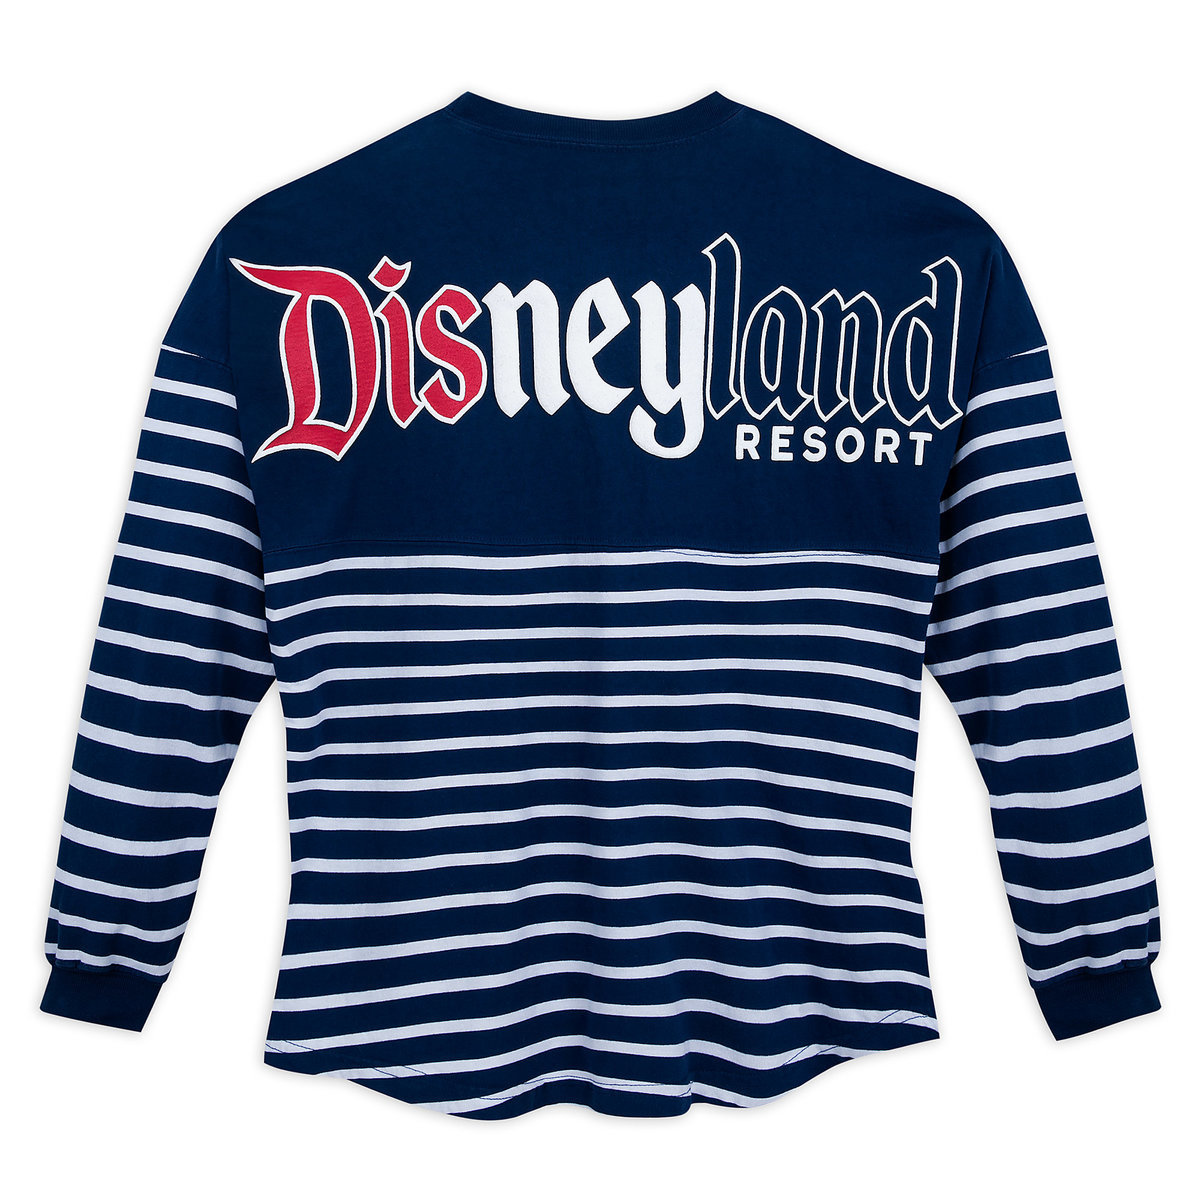 Disneyland Americana Spirit Jersey For Adults by Disney